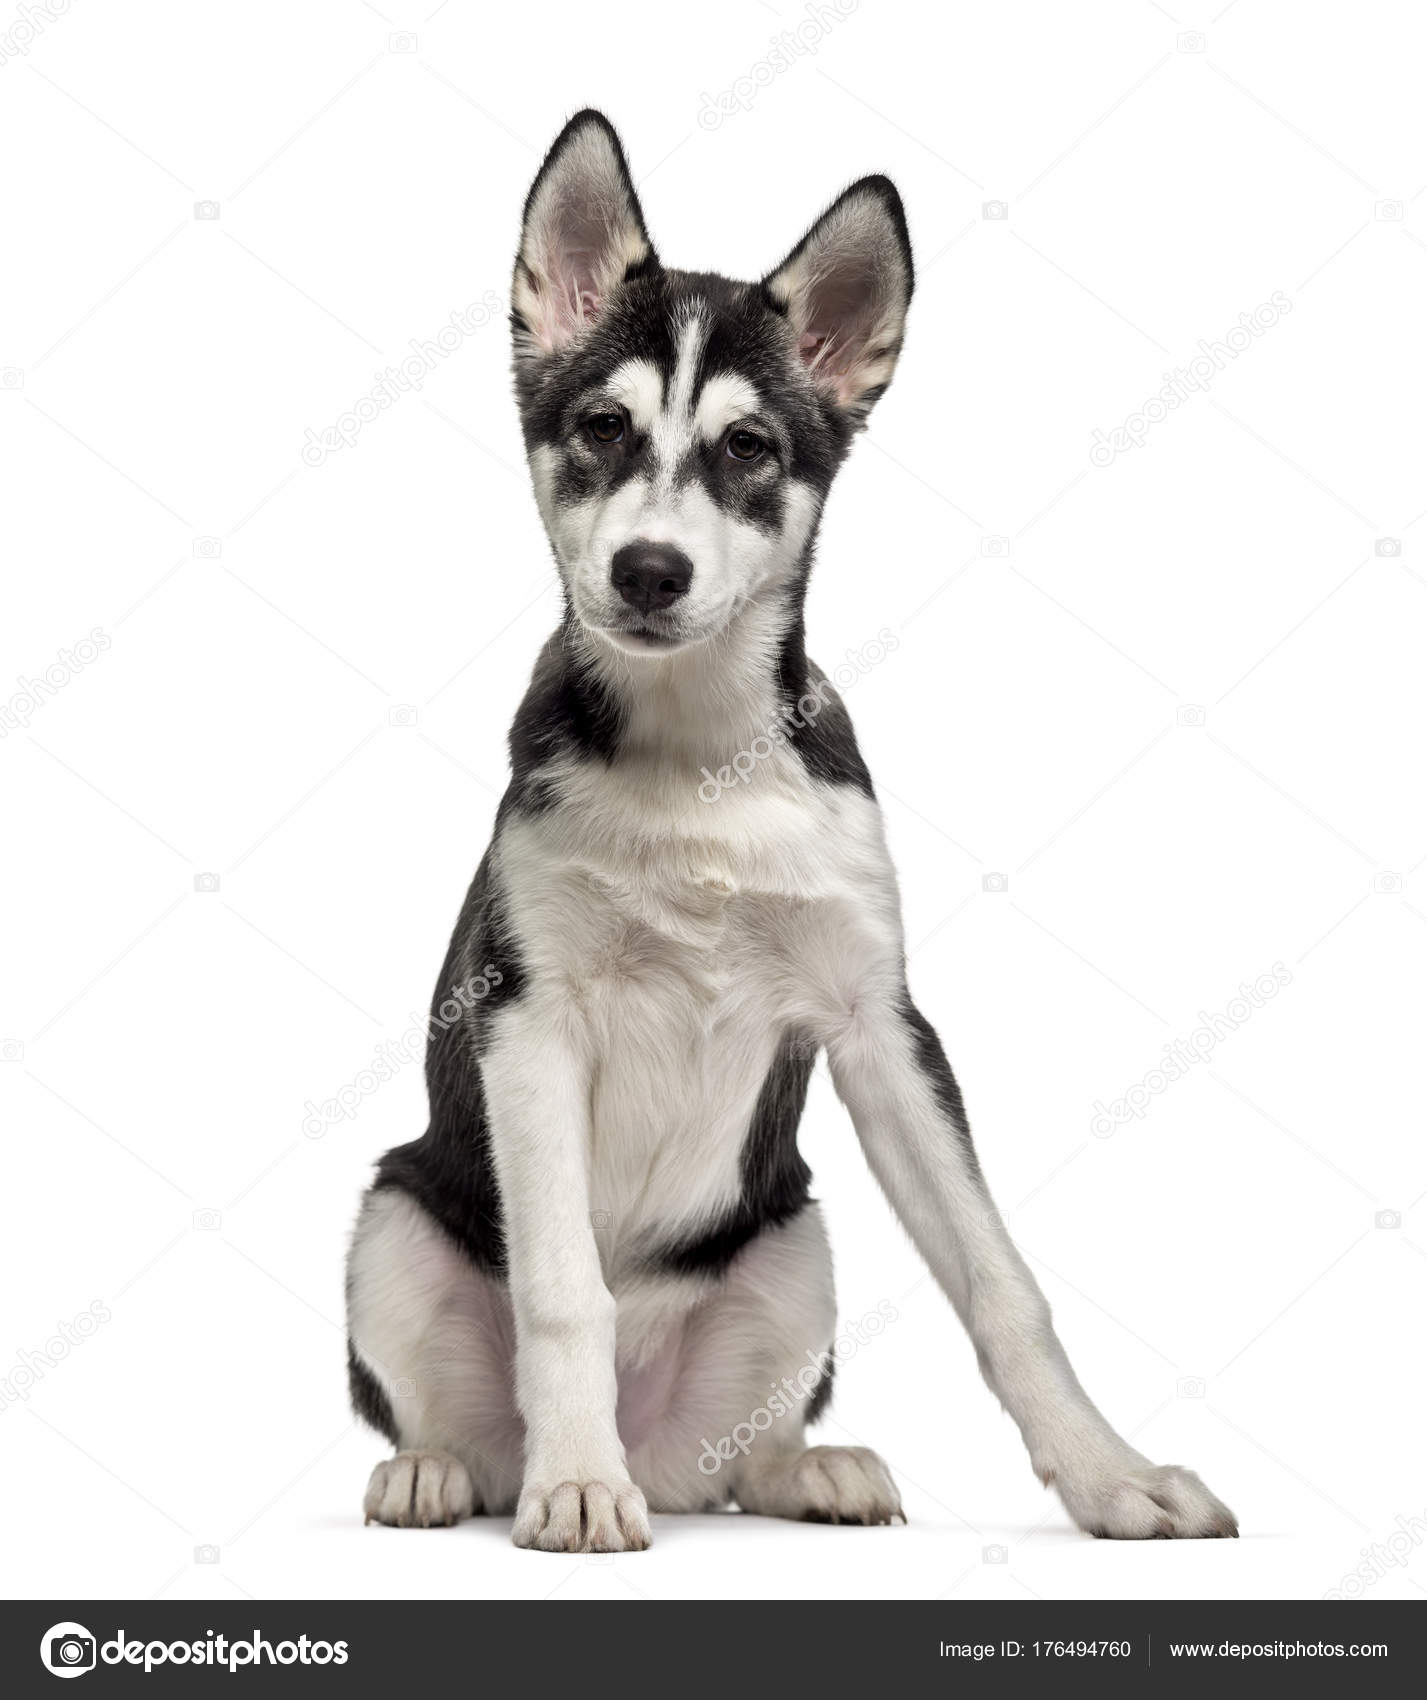 Husky 2 Meses Siberian Husky Puppy 5 Months Old Isolated On White Stock